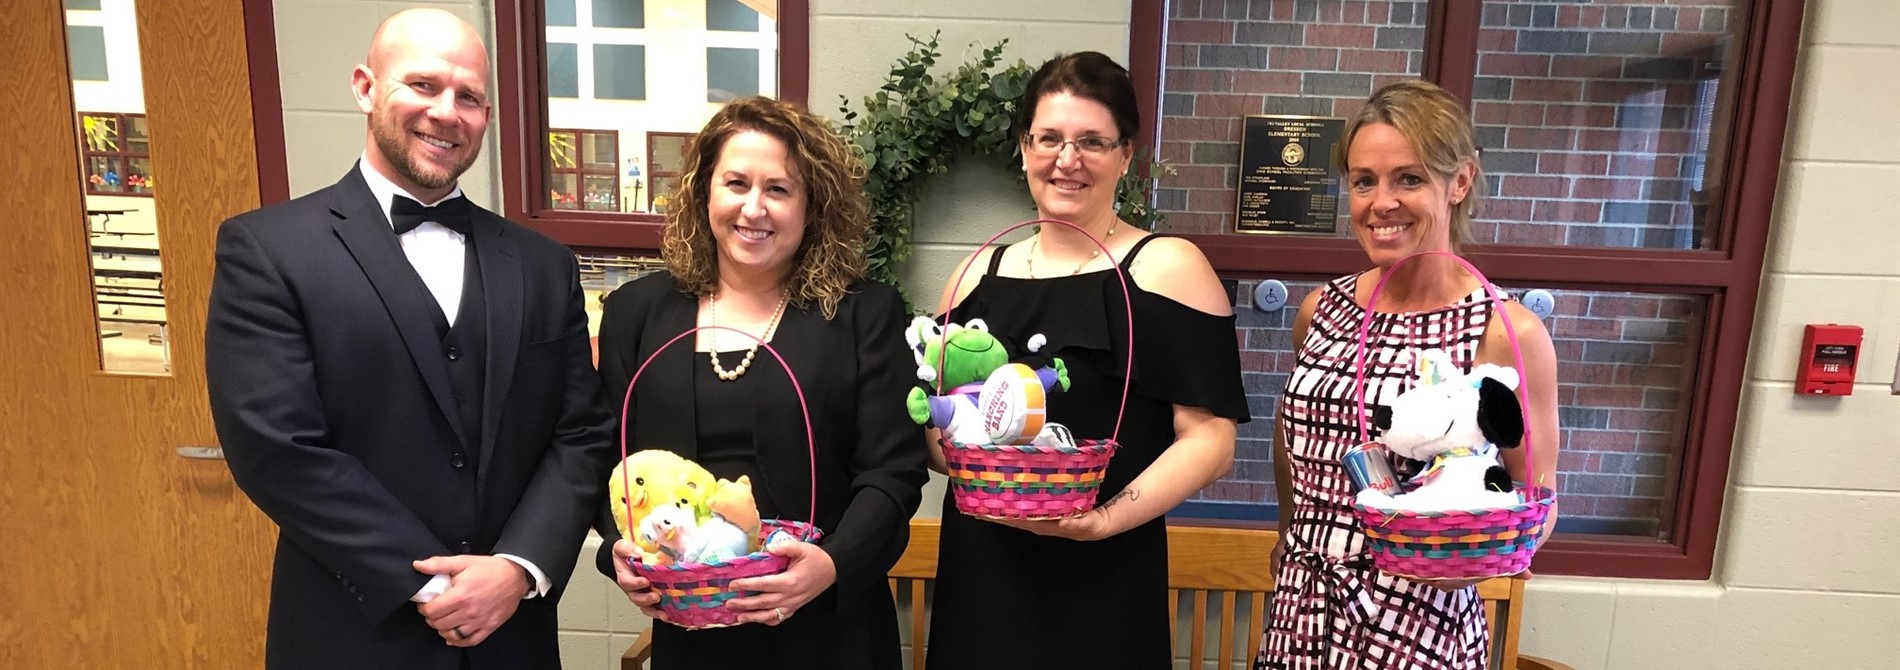 Happy Easter from the Dresden Office staff as we celebrate Dress Up day!